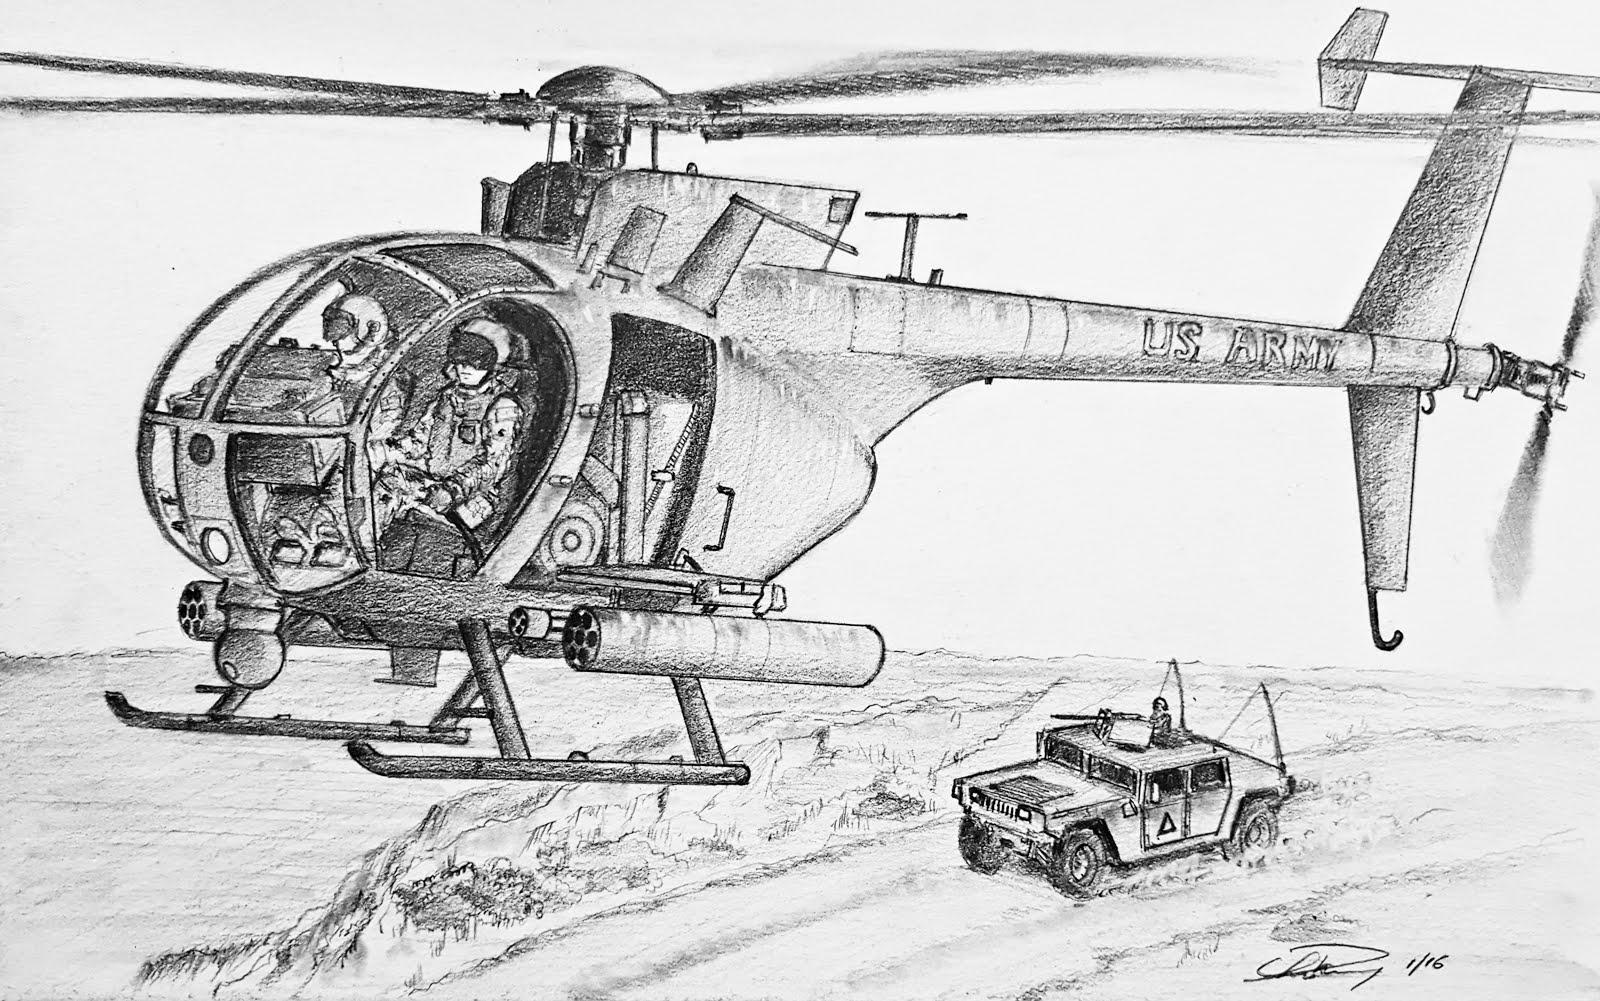 Drawn helicopter little bird Bird OH Helicopter an Draw